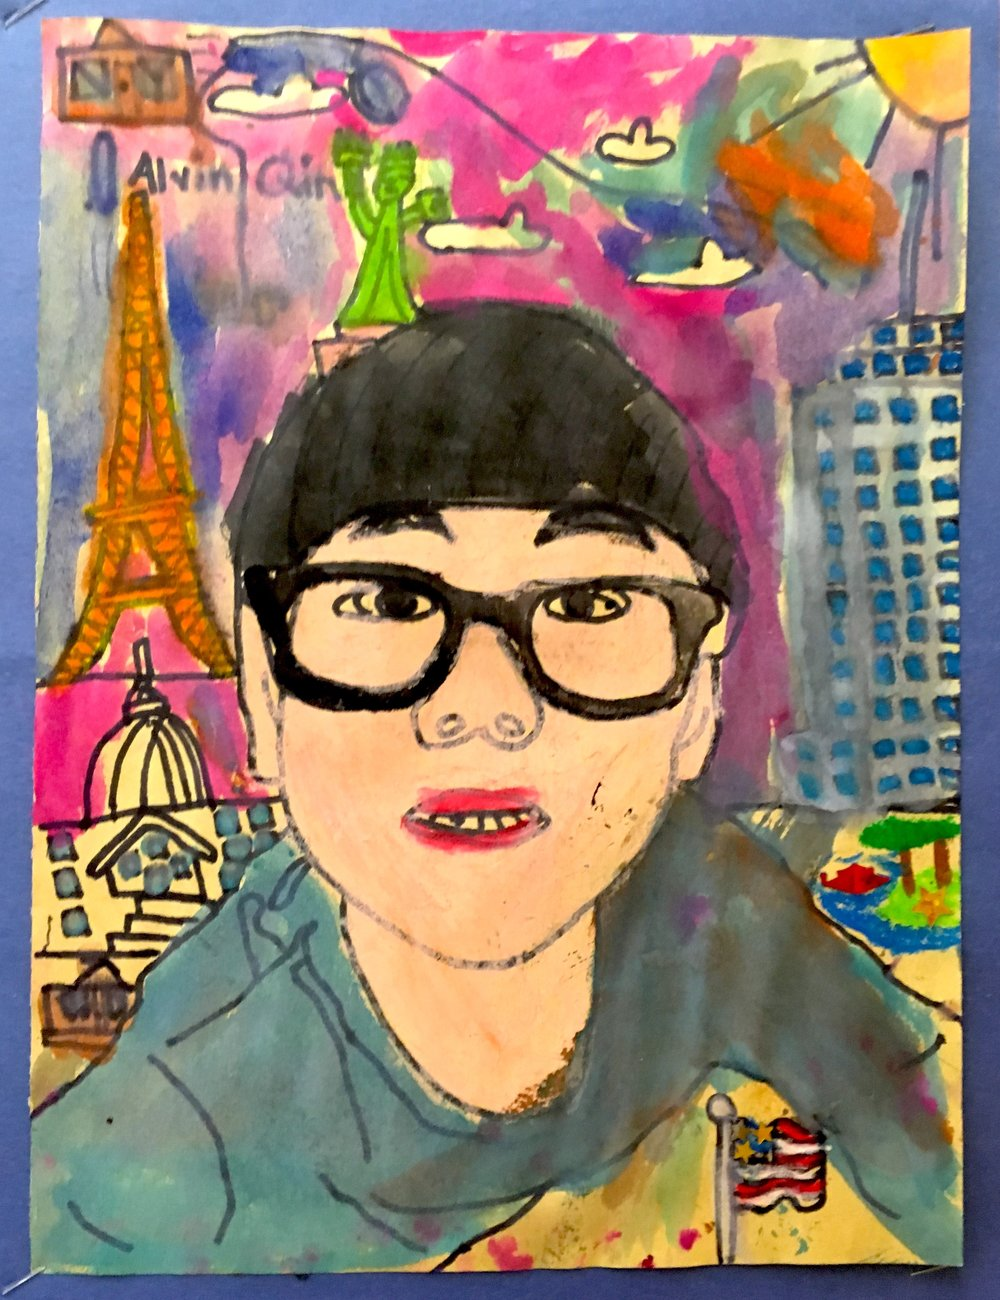 Me, i and Myself, Inspired by Frida Kahlo,  Alvin Qin (2nd grade), 2017